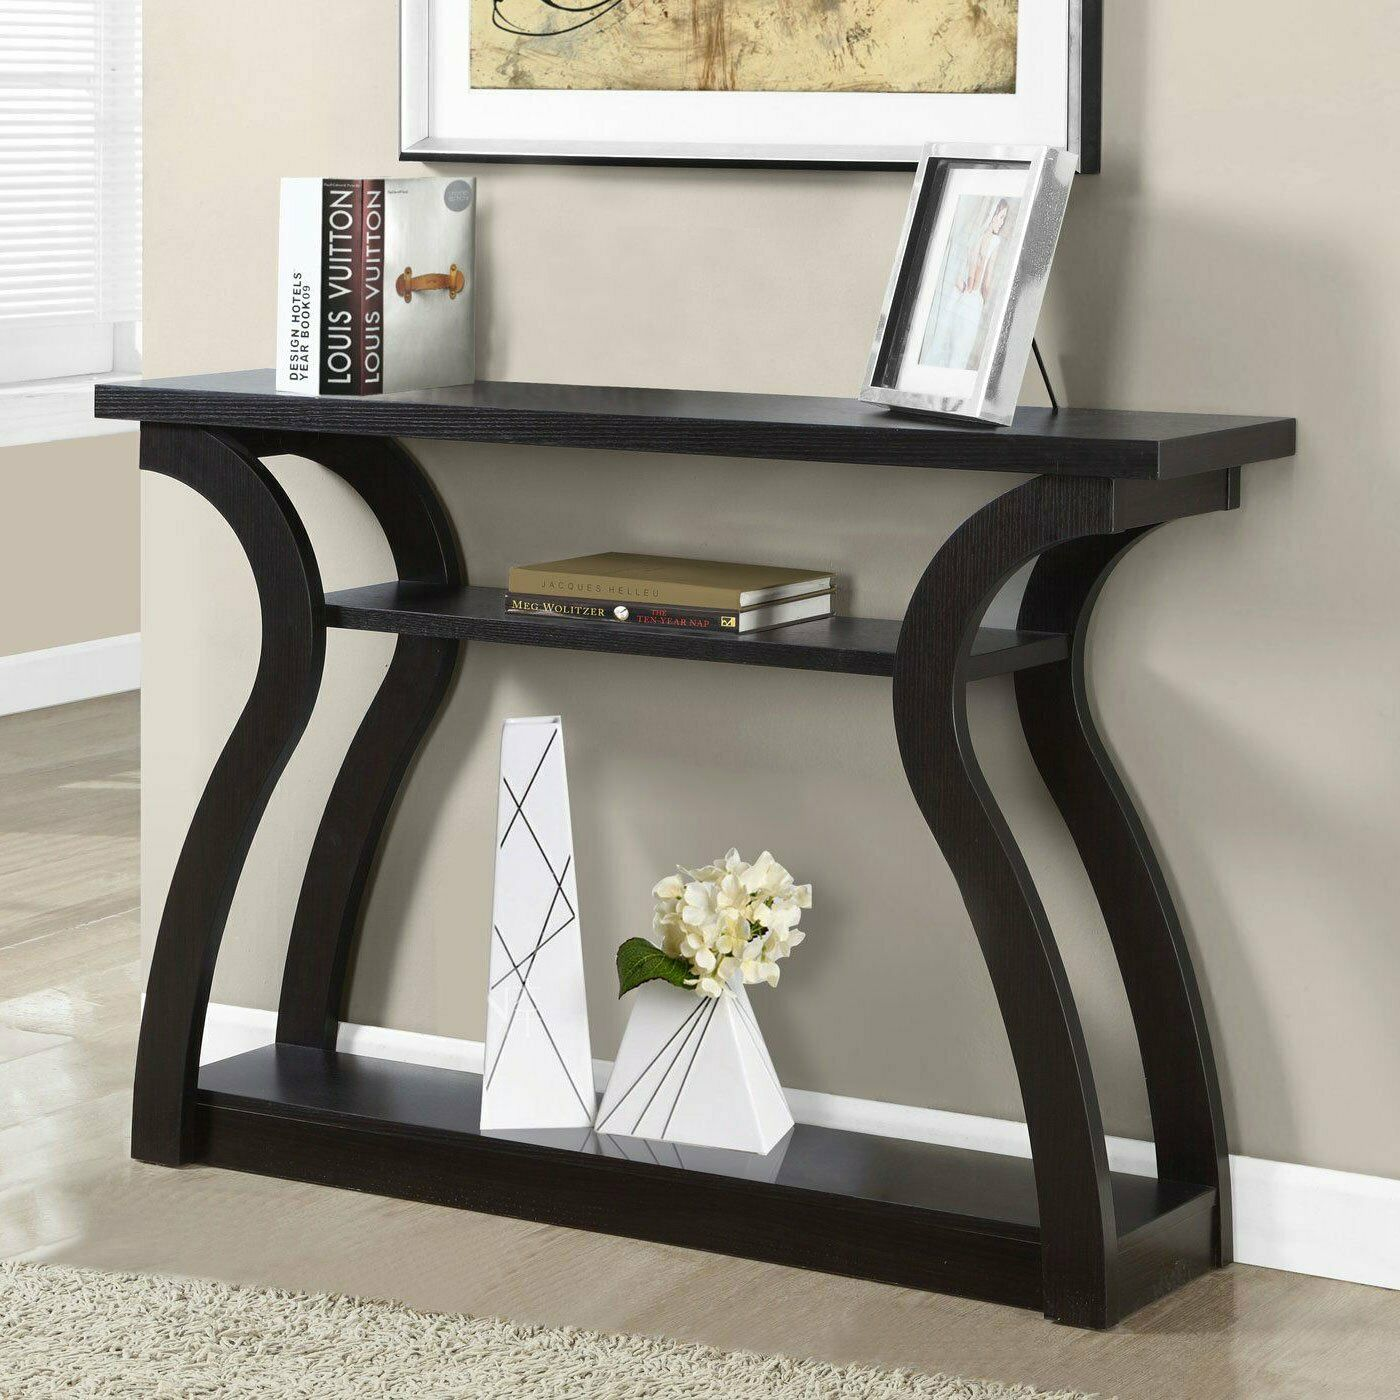 - Console Table Rustic Sofa Tables Entryway Living Room Wood Hallway